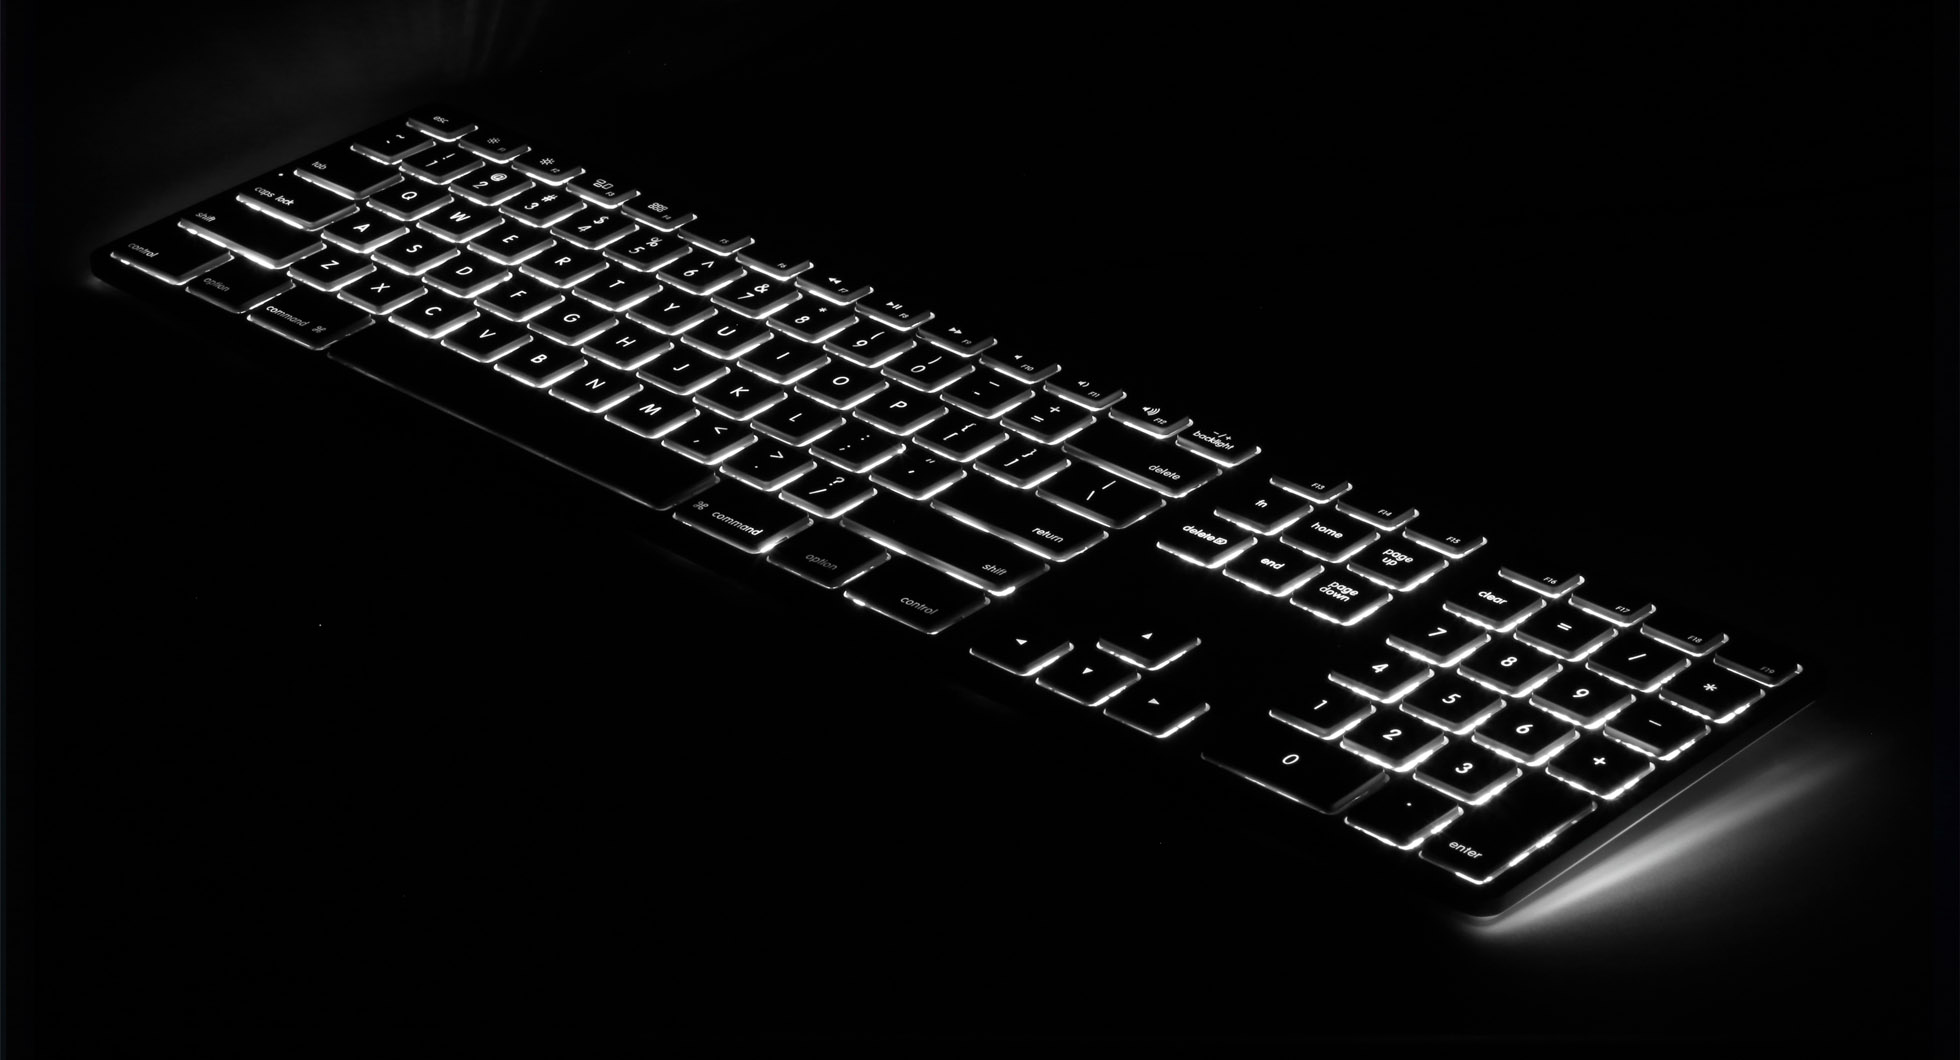 matias black space grey wired aluminium mac keyboard rgb backlit. Black Bedroom Furniture Sets. Home Design Ideas